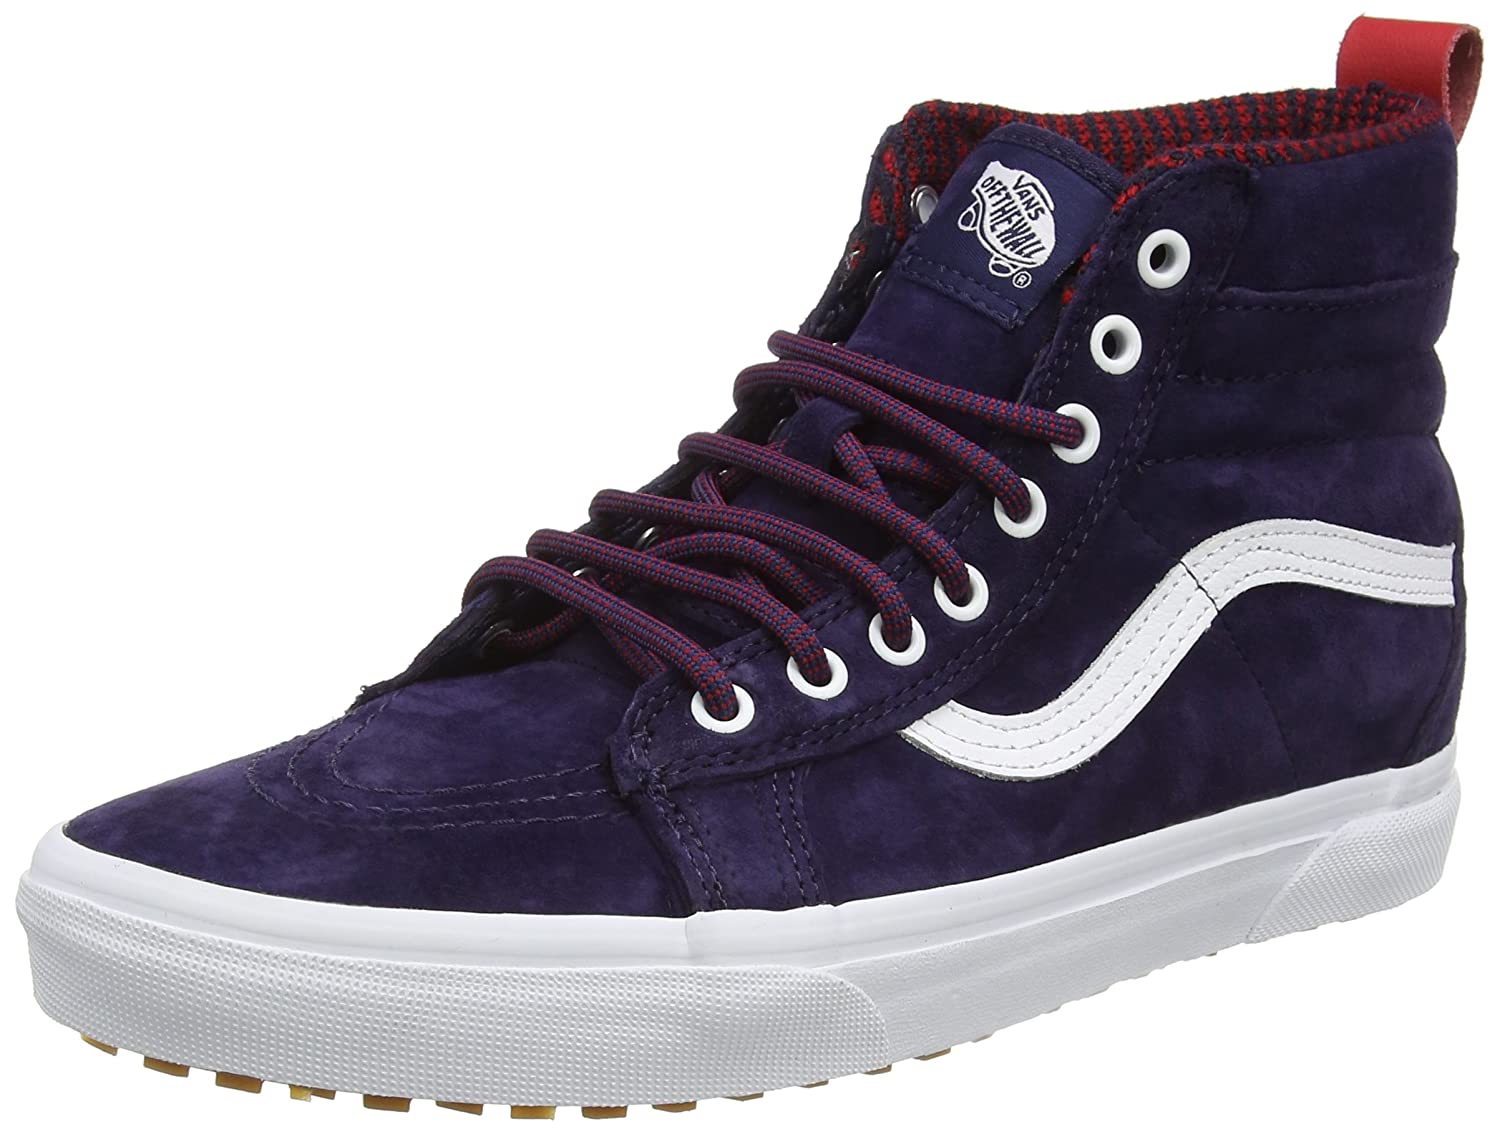 Vans Sk8-Hi MTE, Zapatillas Altas Unisex Adulto 34.5 EU|Azul (Mte Evening Blue/True White)